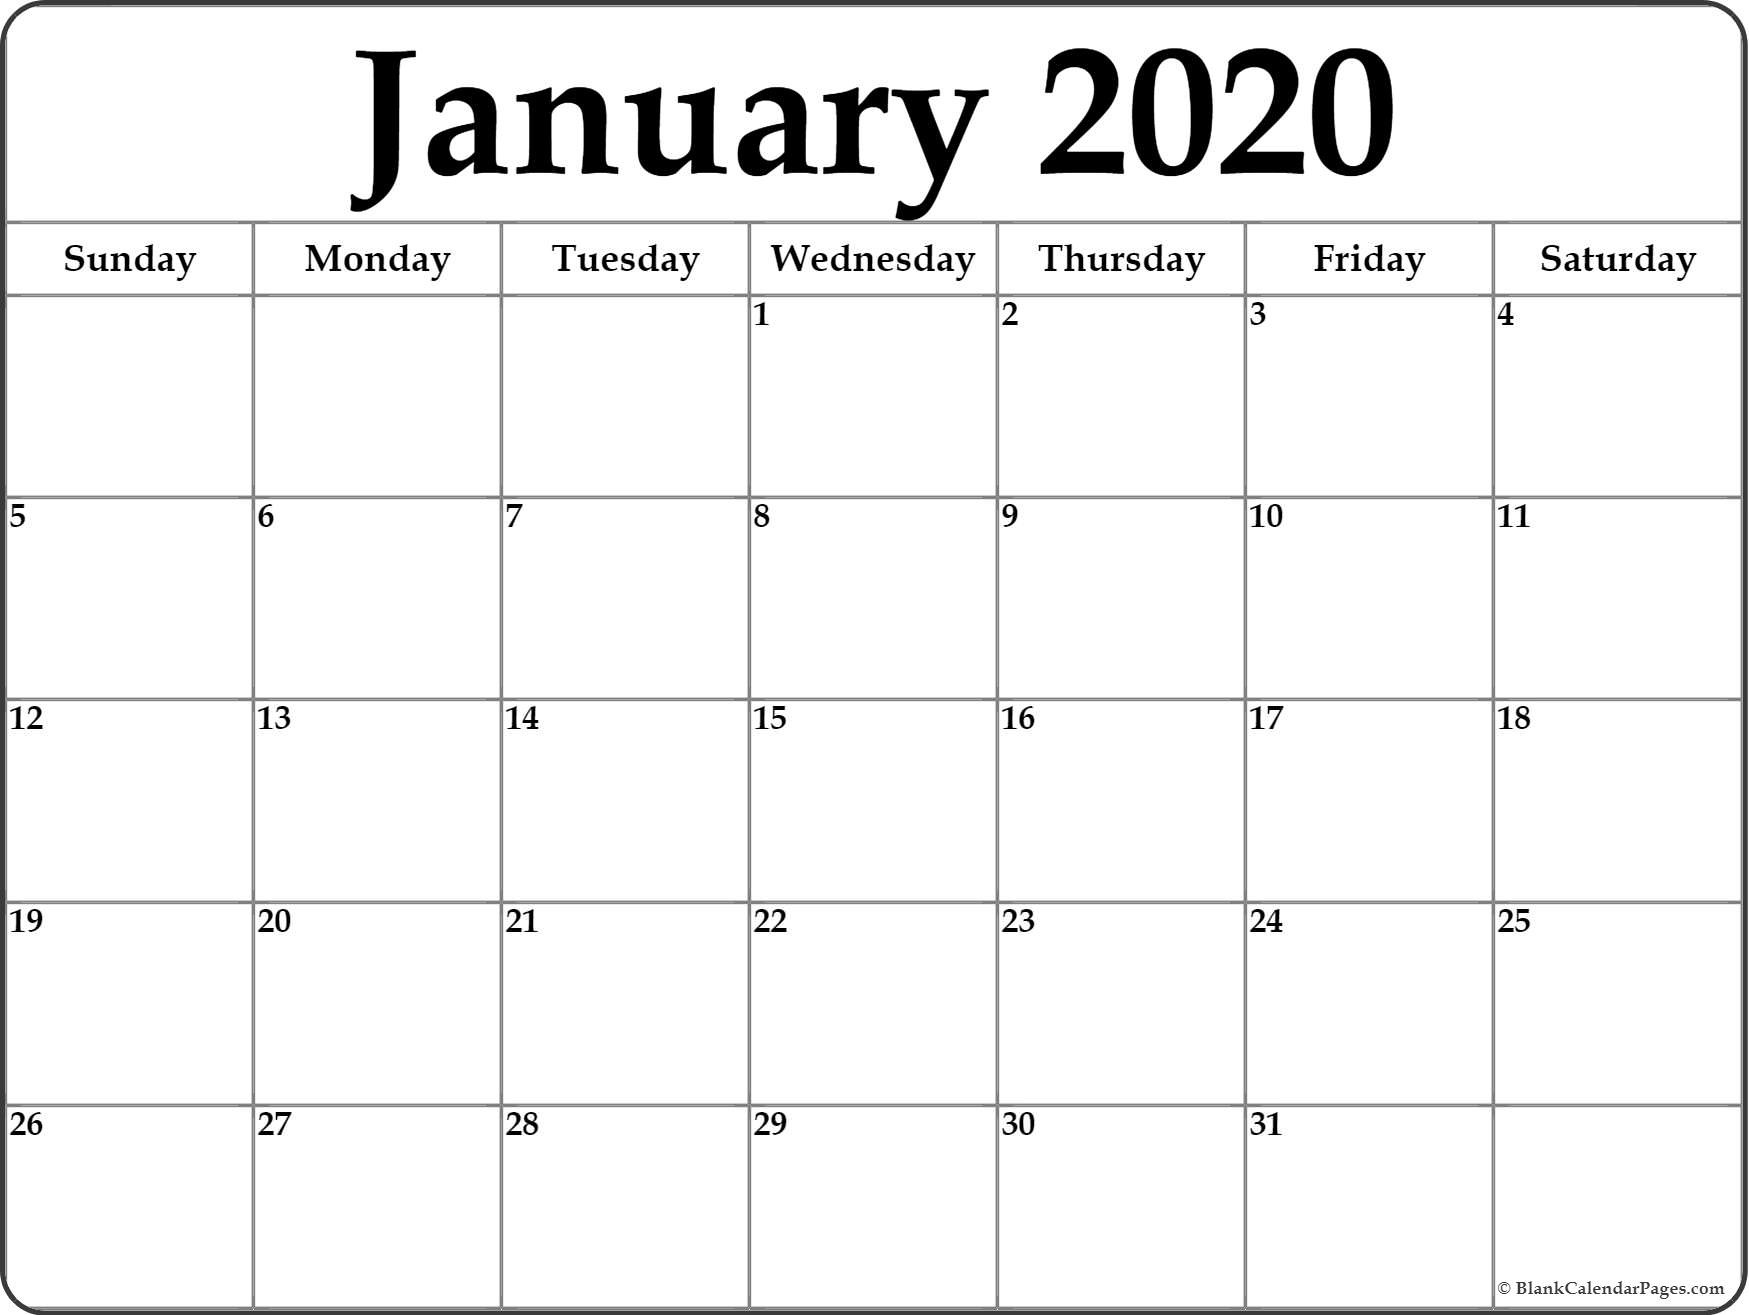 January 2020 Calendar | Free Printable Monthly Calendars  Free Printable Calendar 2020 Monthly